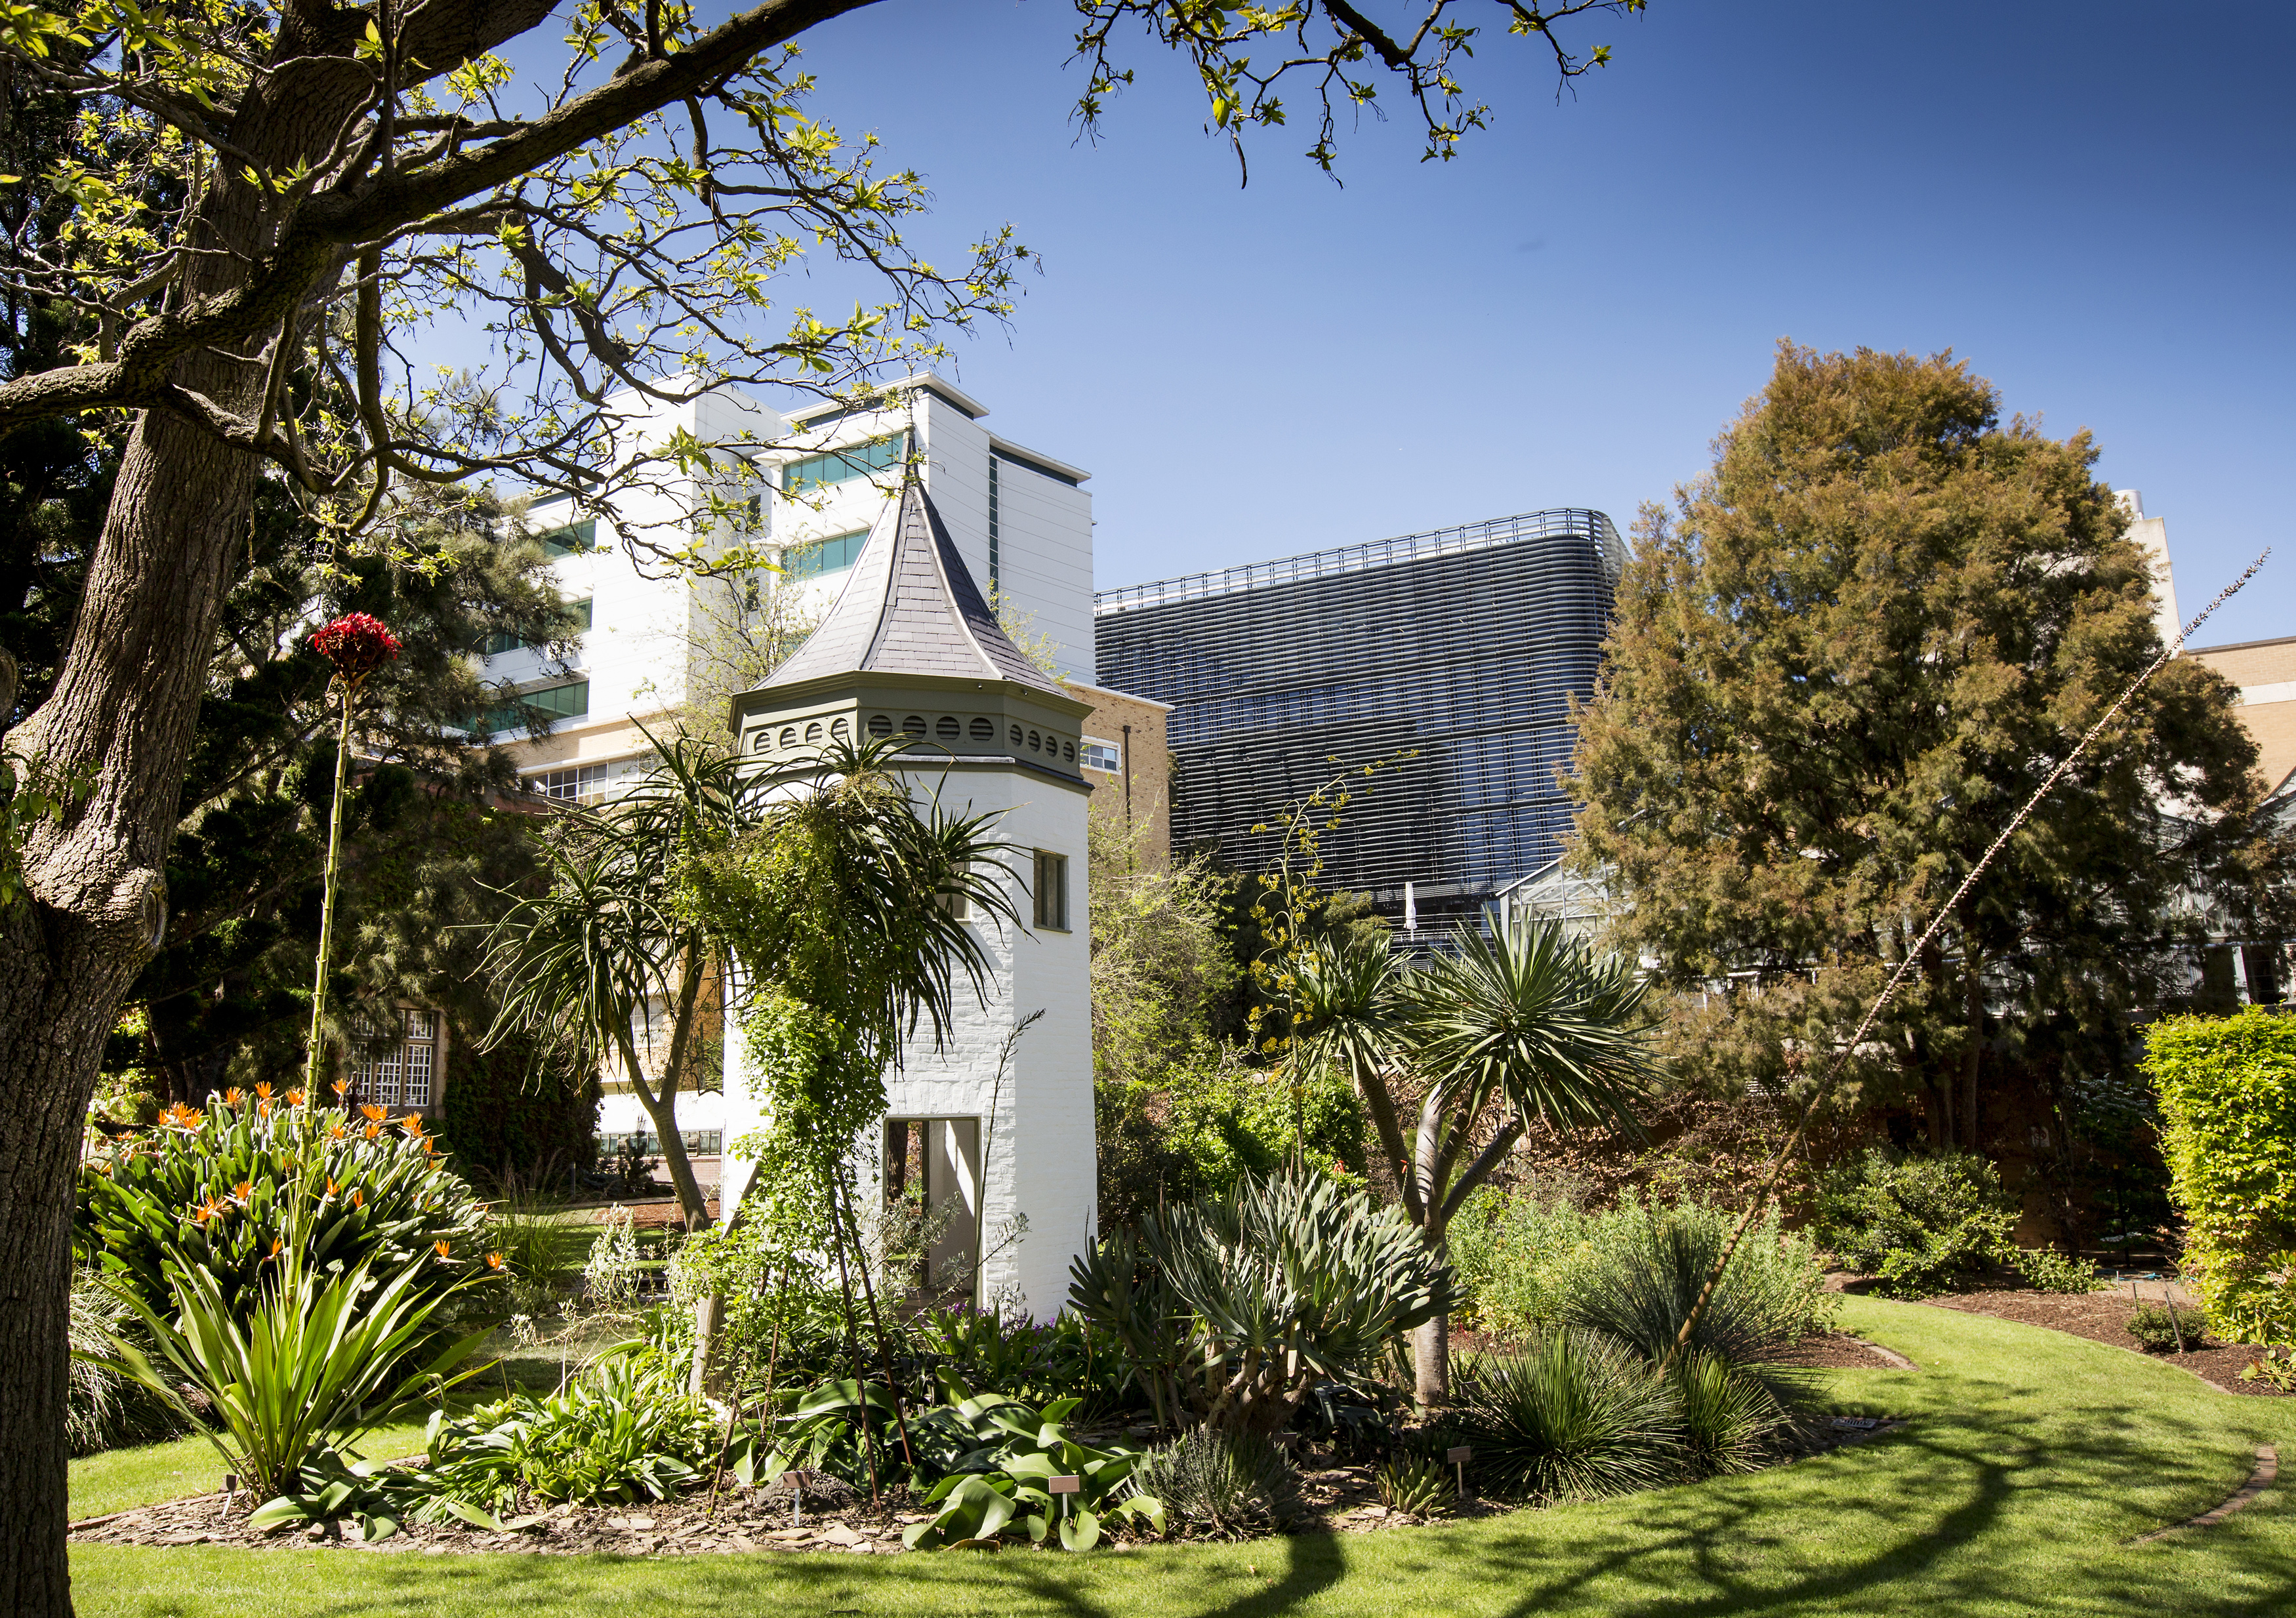 The white turret of the system garden stands out against a backdrop of the University's new Arts building